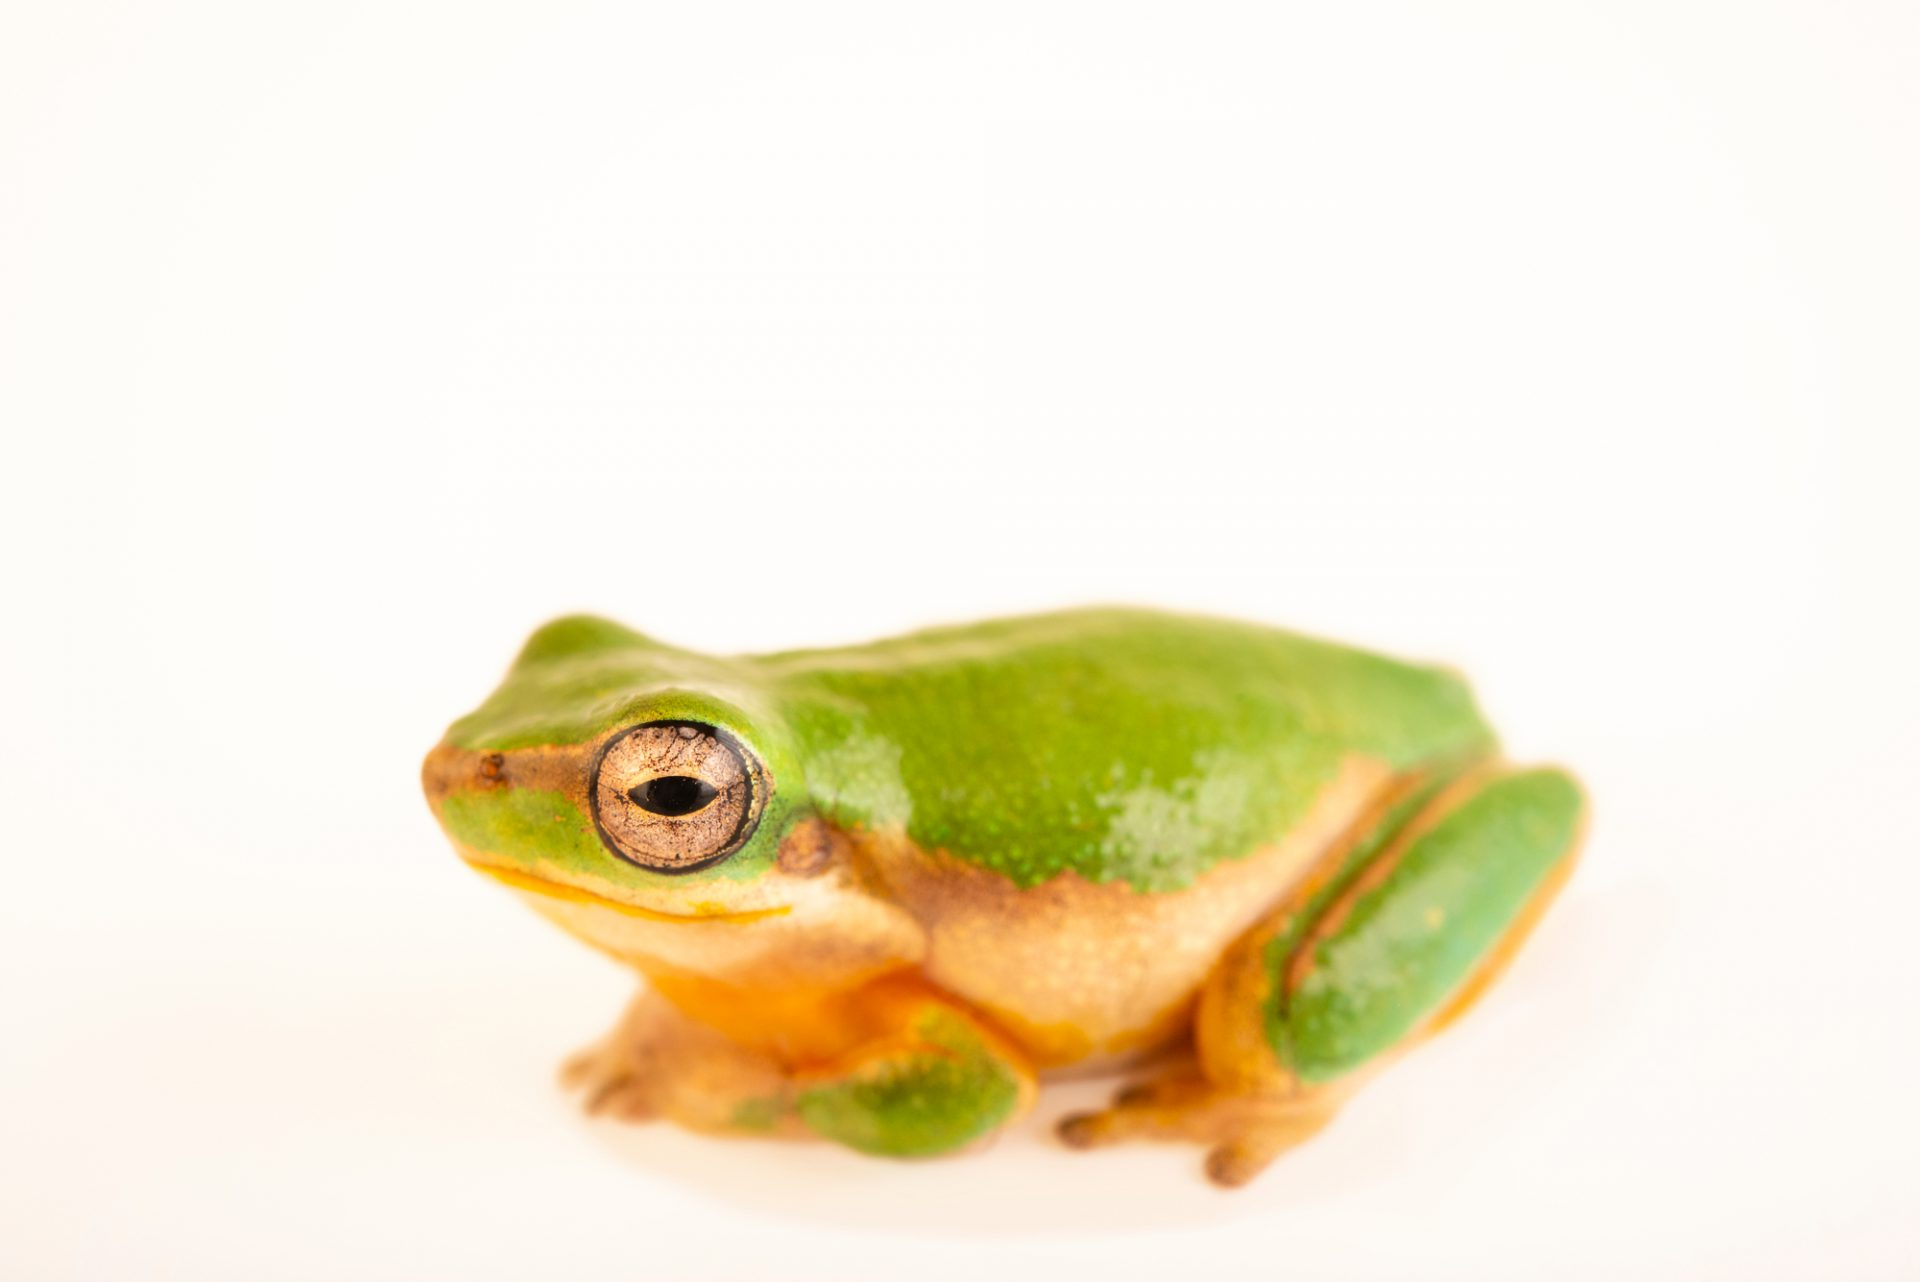 Photo: Eastern dwarf tree frog (Litoria fallaxs) at Melbourne Zoo